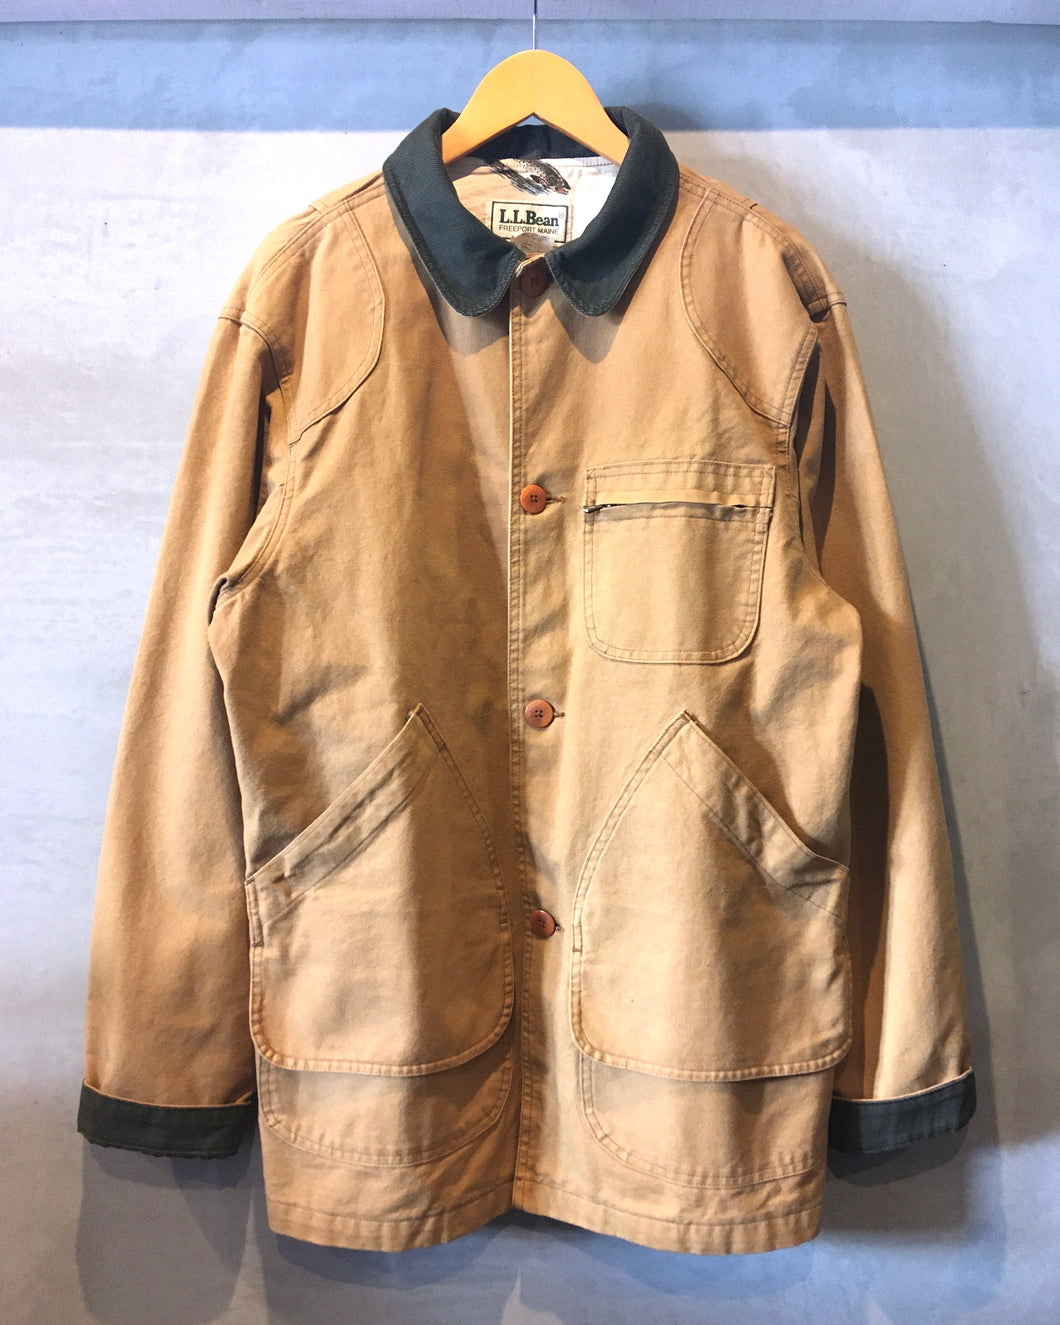 L.L.Bean-Hunting jacket-(size M)Made in U.S.A.